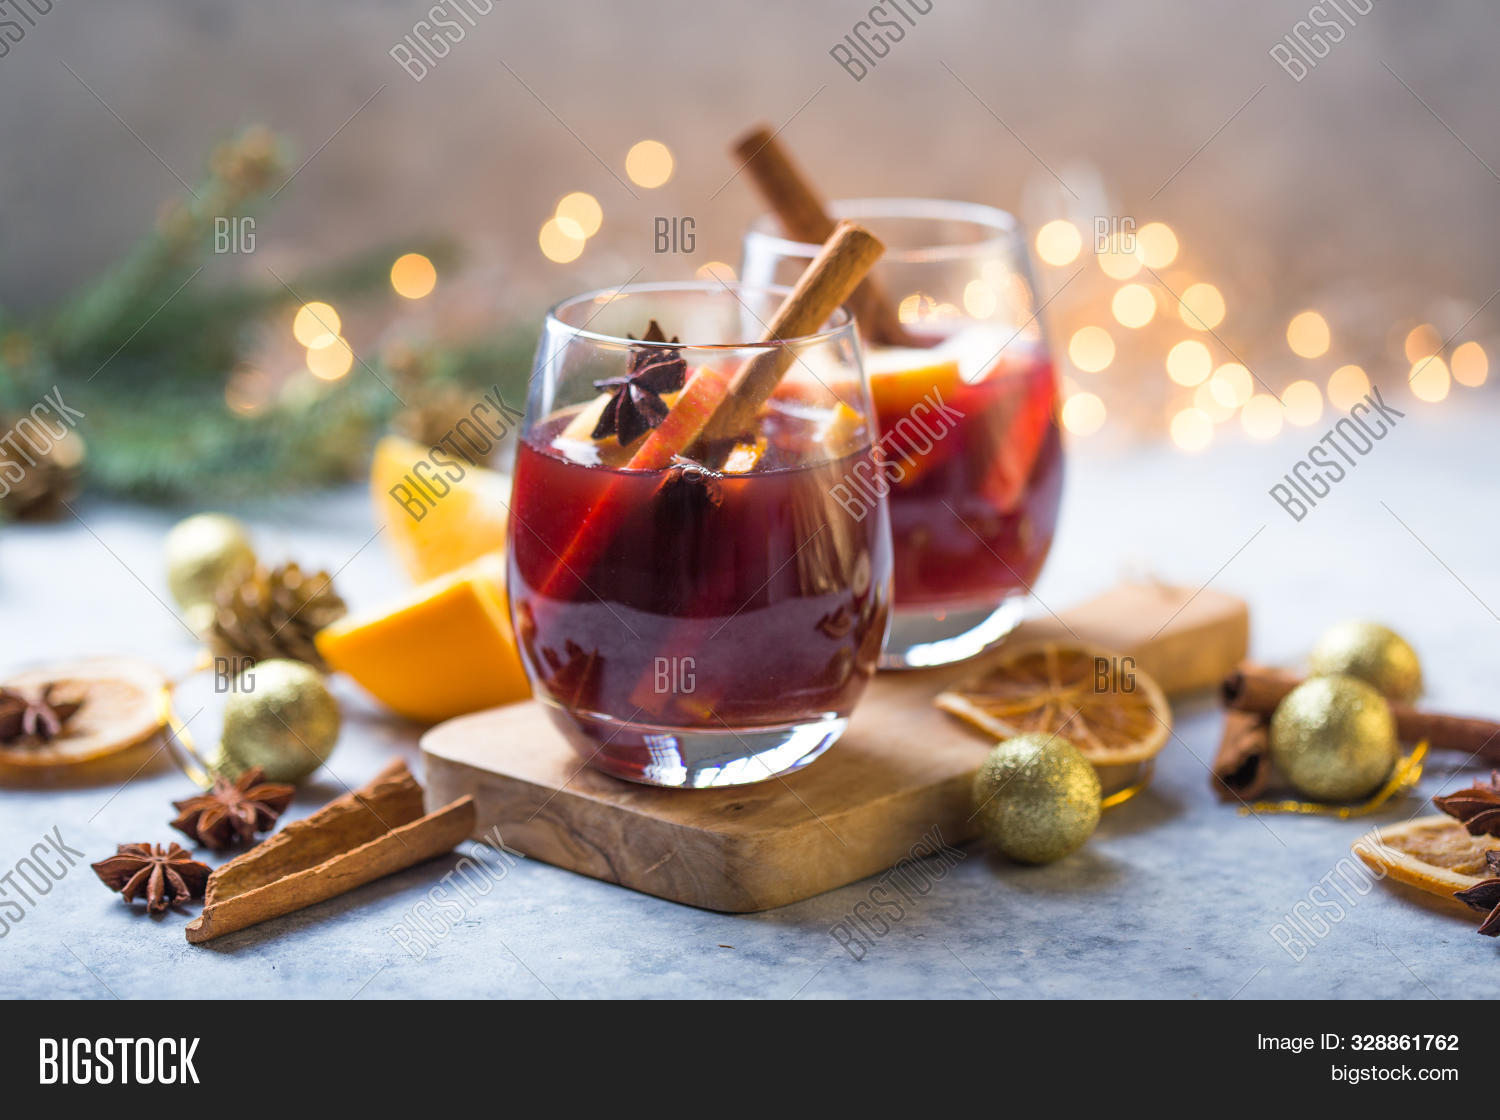 Christmas,alcohol,anise,aromatic,balls,berry,beverage,celebration,cinnamon,citrus,cocktail,cone,cranberry,decoration,delicious,drink,eve,festive,fir,food,fruit,glass,glogg,holiday,homemade,hot,juice,liquid,merry,mulled,new,orange,party,punch,red,rustic,seasonal,spice,table,traditional,tree,warm,windmill,wine,winter,wood,wooden,xmas,year